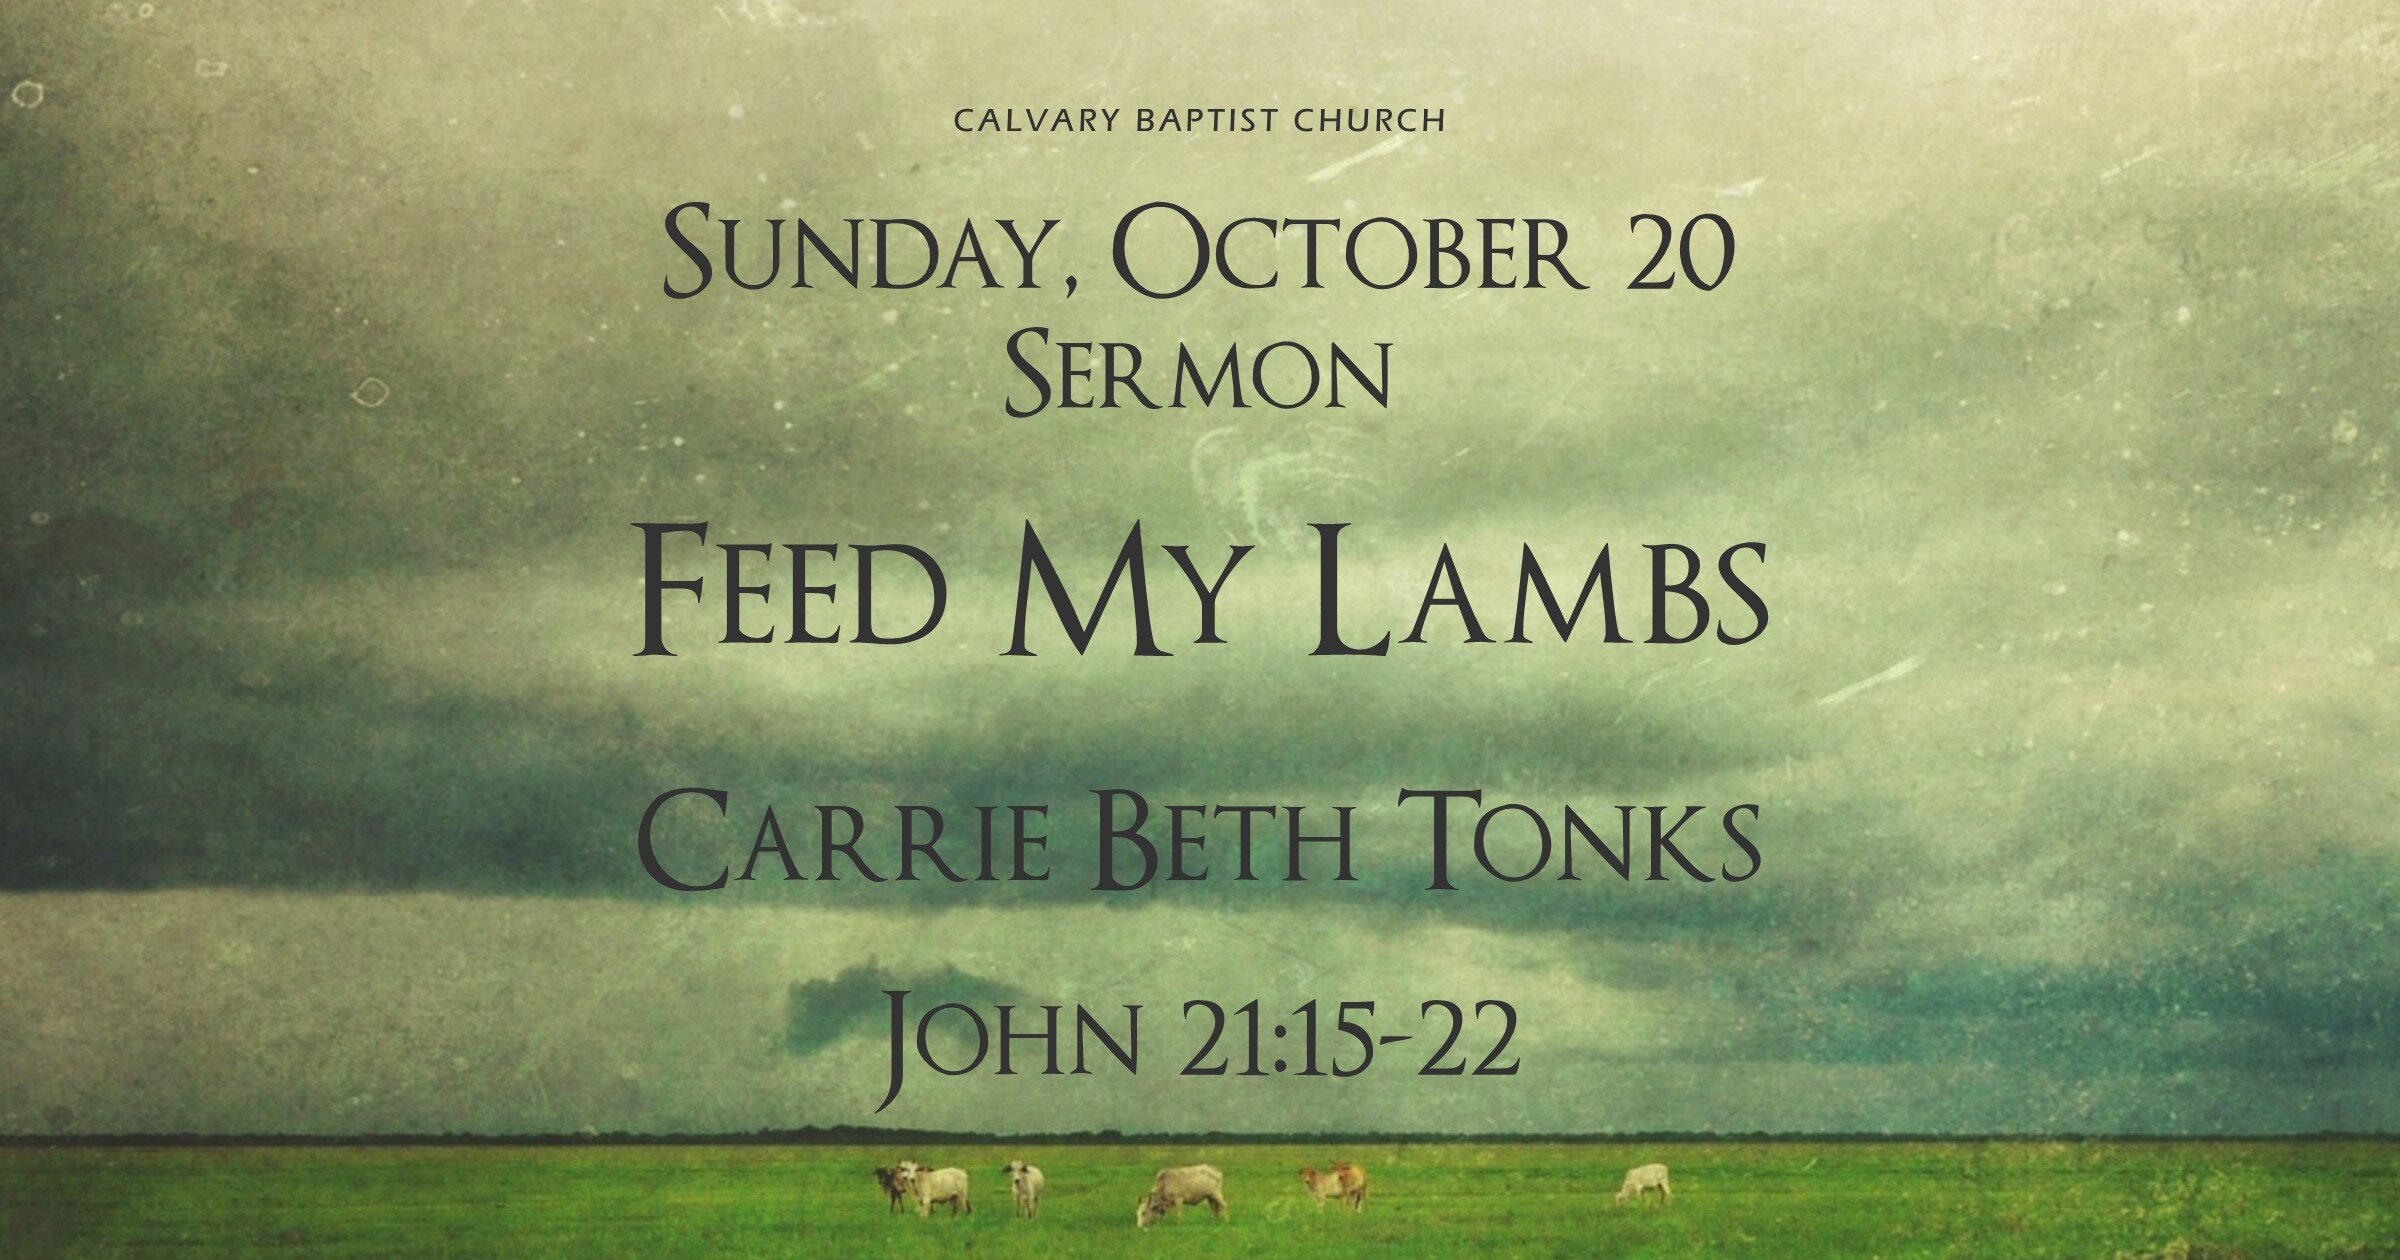 Oct 20 sermon fb image.jpg